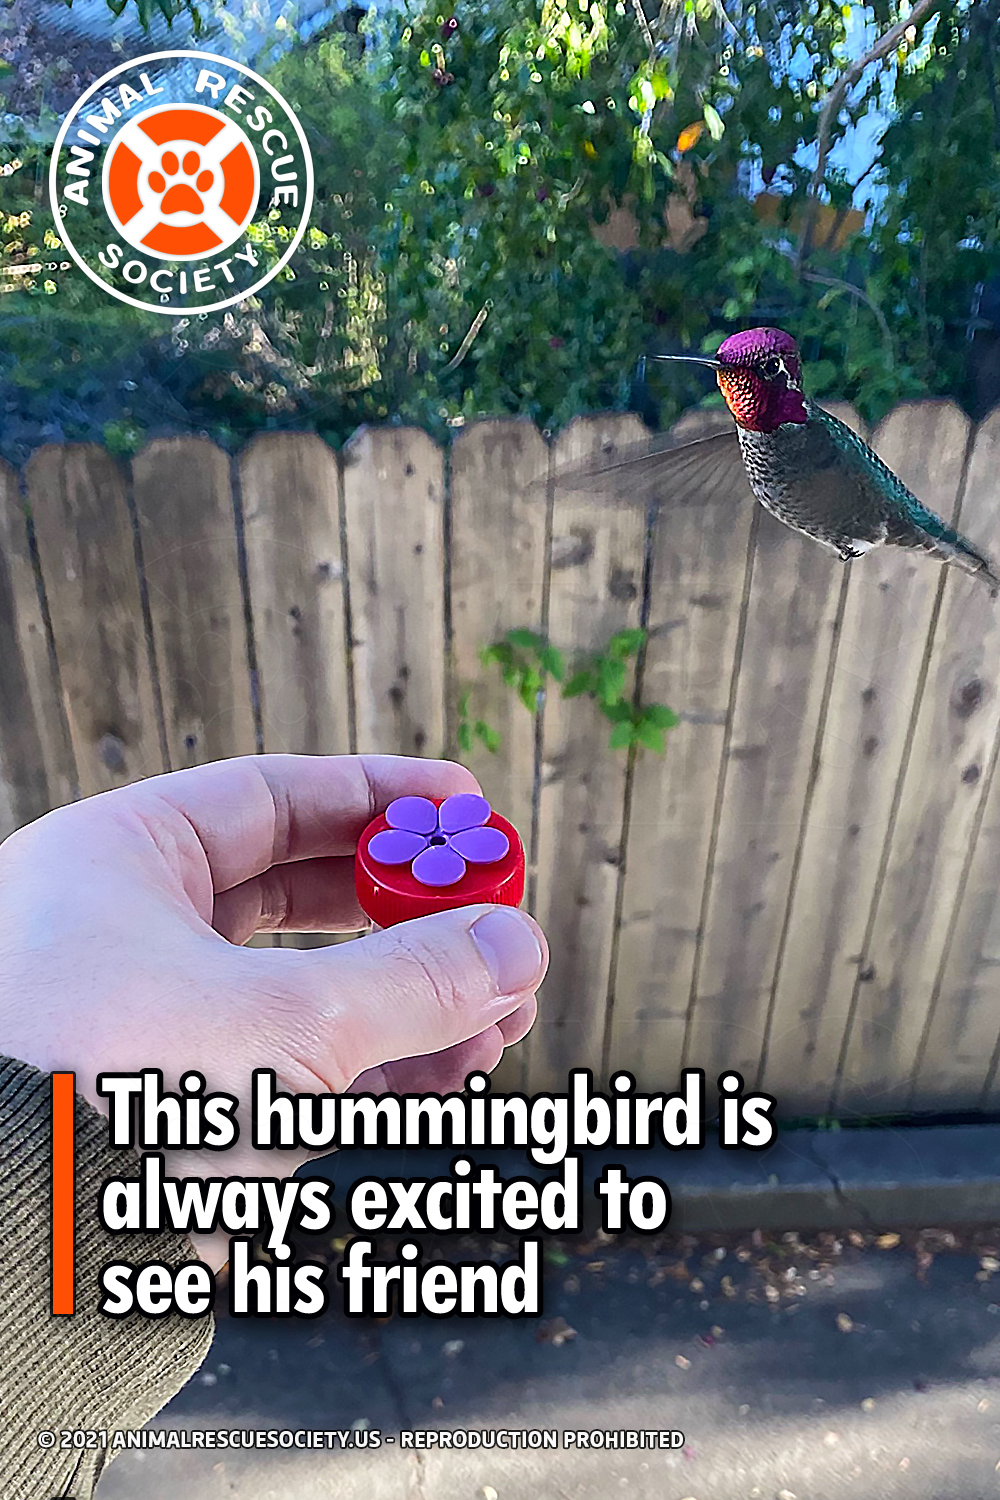 This hummingbird is always excited to see his friend